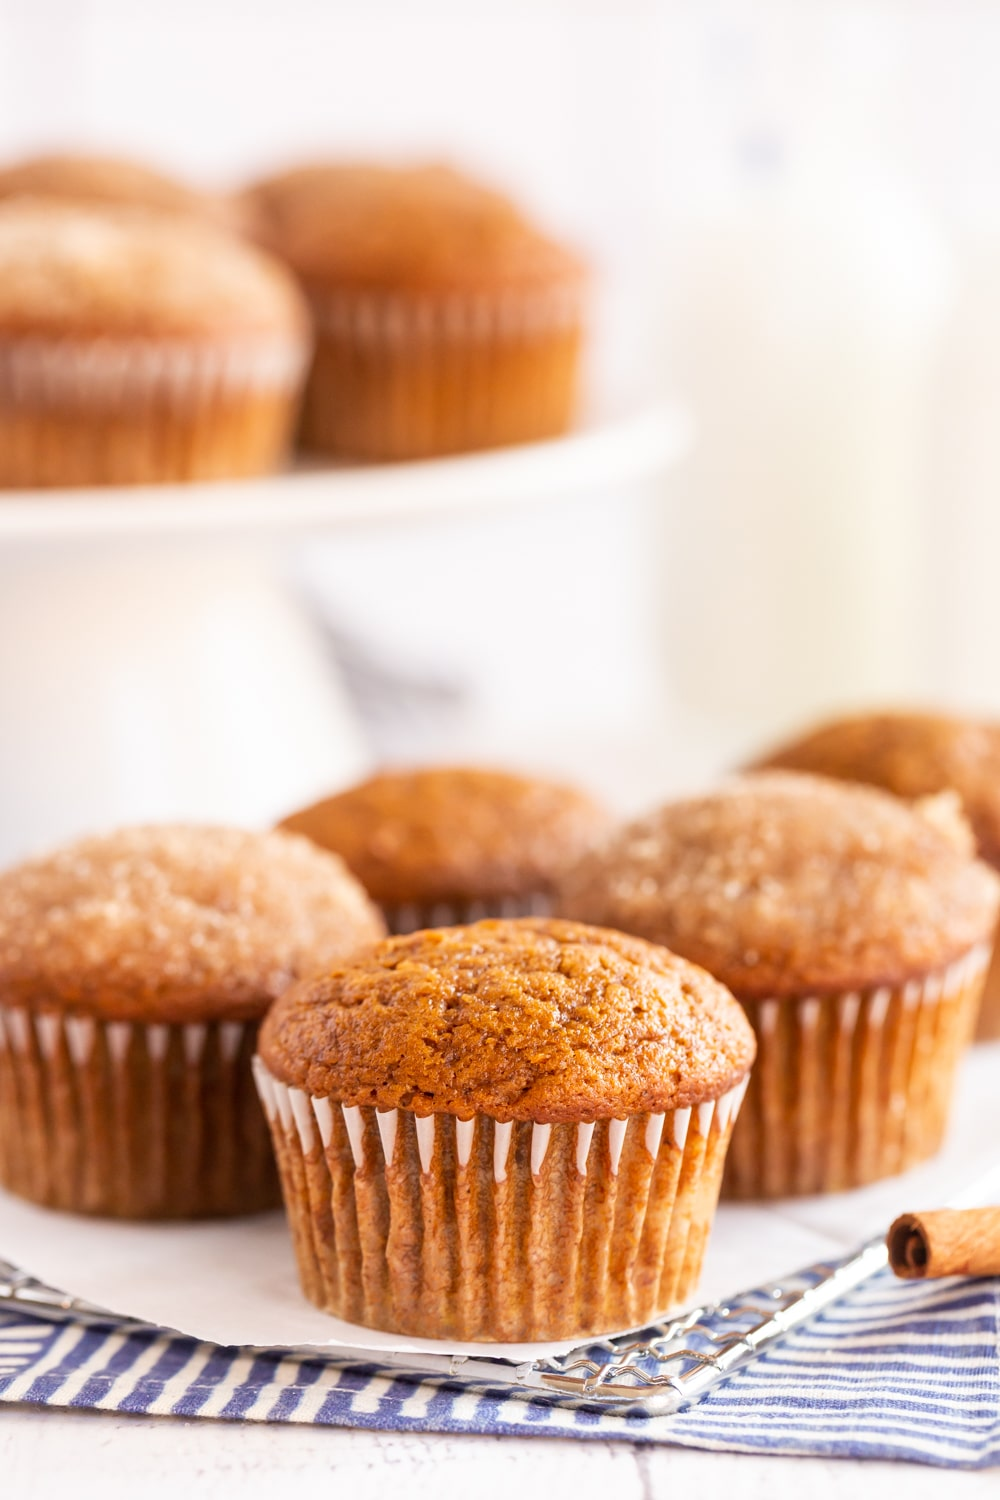 These Pumpkin Muffins are bursting with pumpkin, cinnamon and a touch of nutmeg! You can enjoy them right out of the oven or dip in some melted butter and cinnamon sugar for an extra bakery touch.